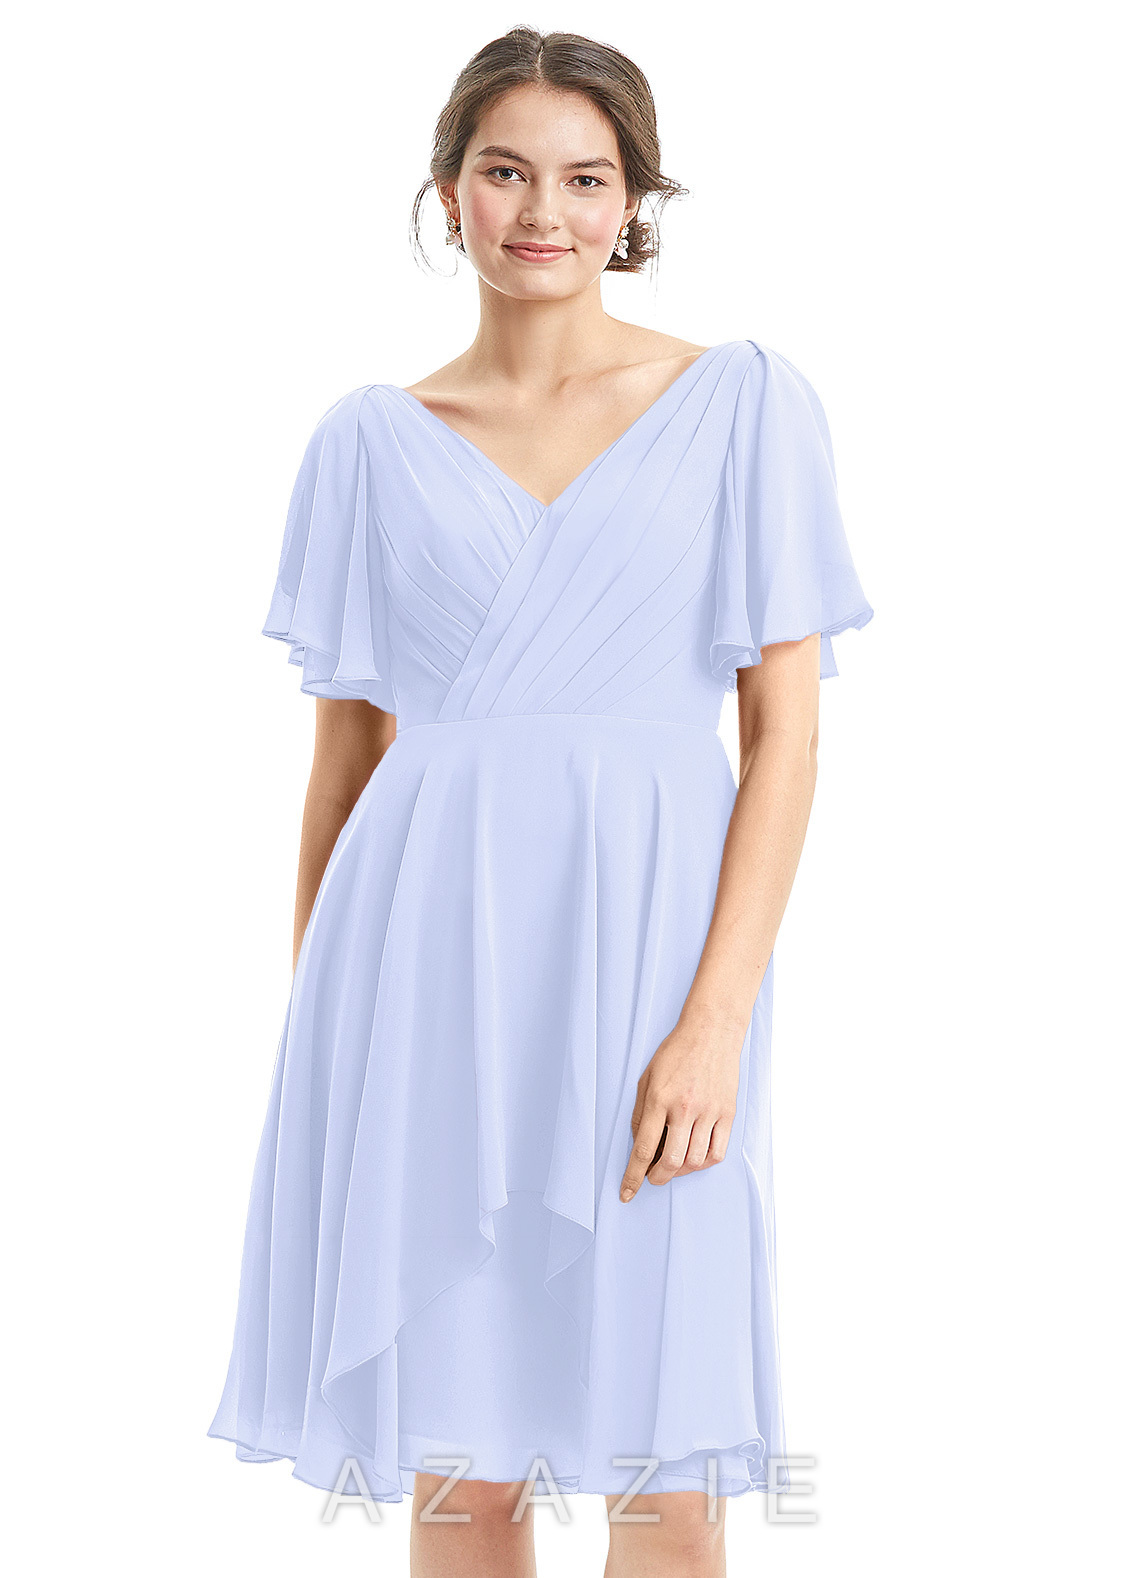 3a4e1d705faa Azazie Ayana Bridesmaid Dress | Azazie